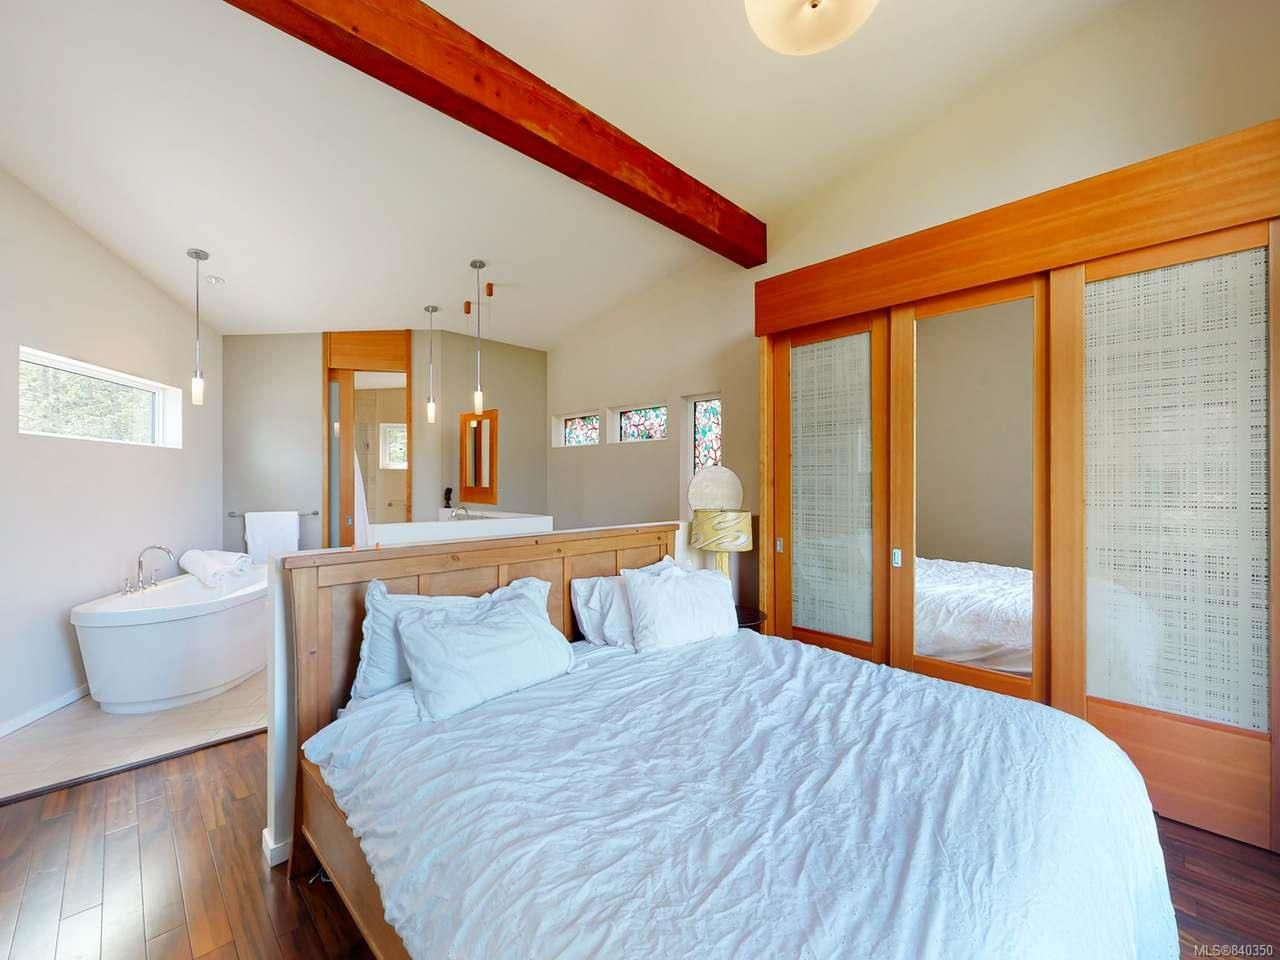 Photo 23: Photos: 1068 Helen Rd in UCLUELET: PA Ucluelet House for sale (Port Alberni)  : MLS®# 840350